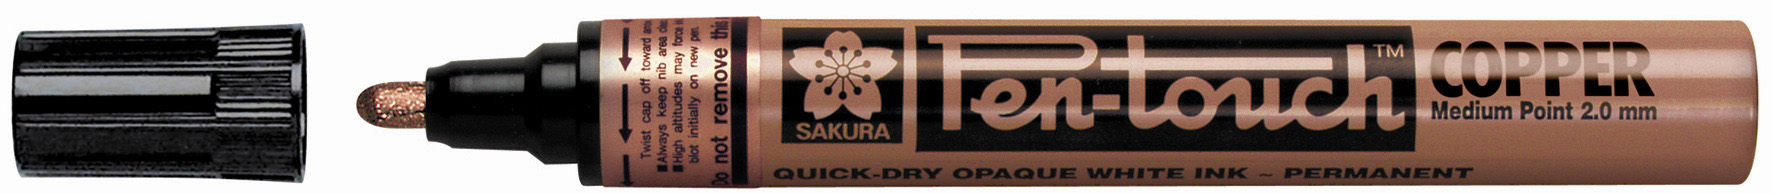 Sakura Pen Touch Permanent Marker - Medium Tip - Silver